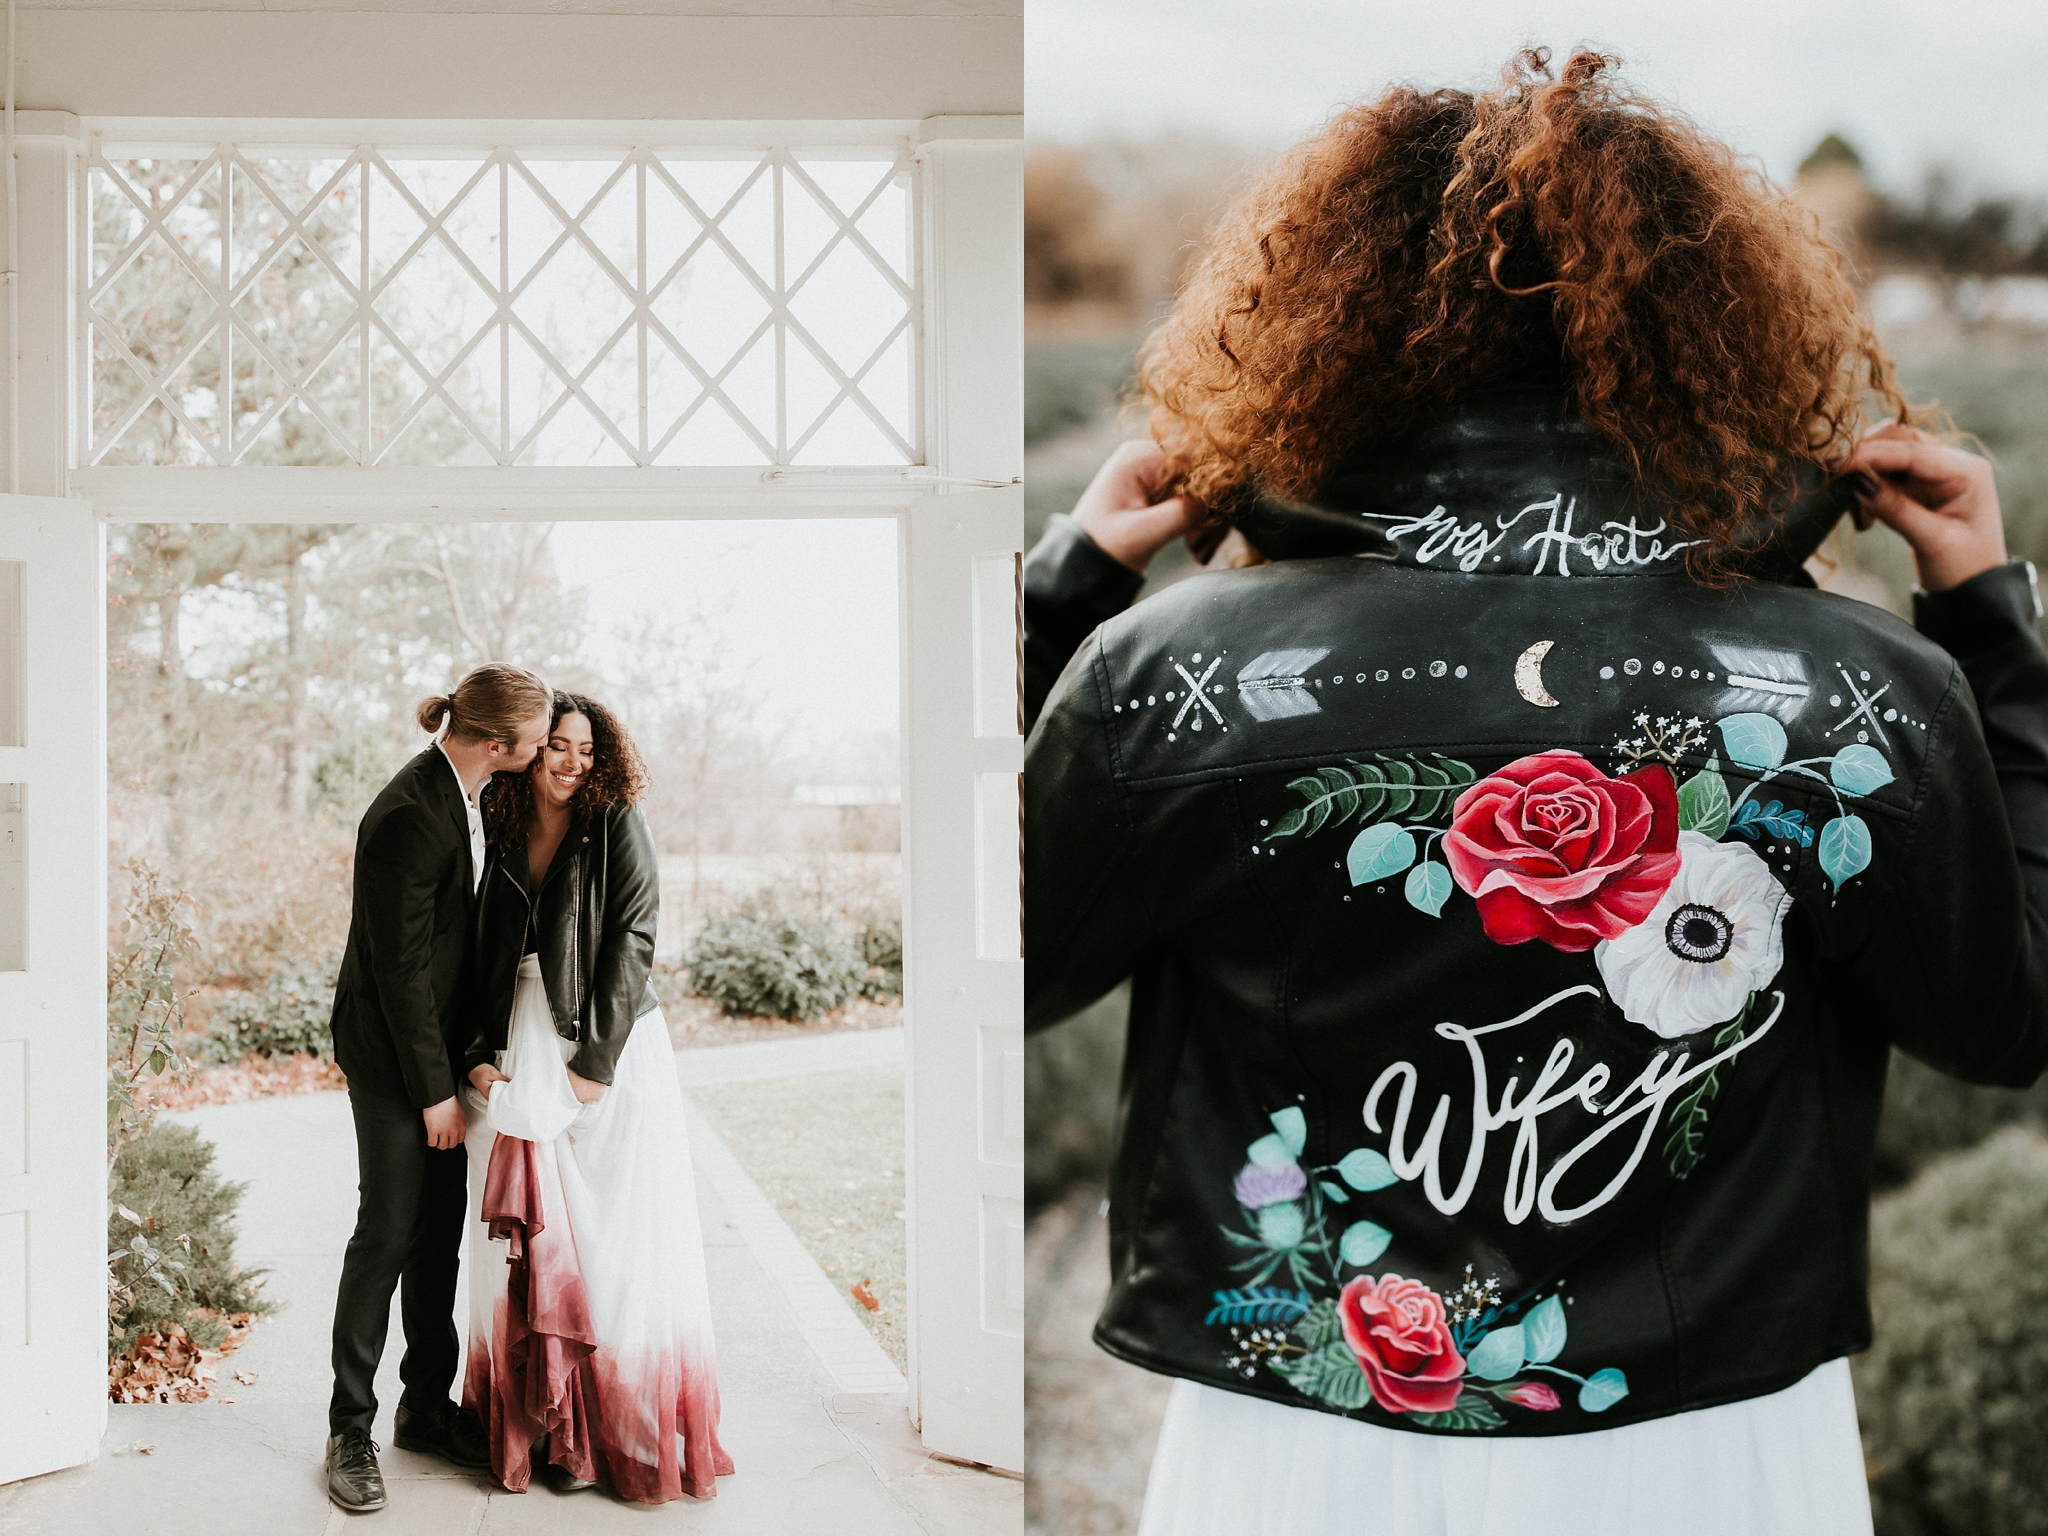 Alicia+lucia+photography+-+albuquerque+wedding+photographer+-+santa+fe+wedding+photography+-+new+mexico+wedding+photographer+-+albuquerque+wedding+-+santa+fe+wedding+-+wedding+gowns+-+non+traditional+wedding+gowns_0021.jpg